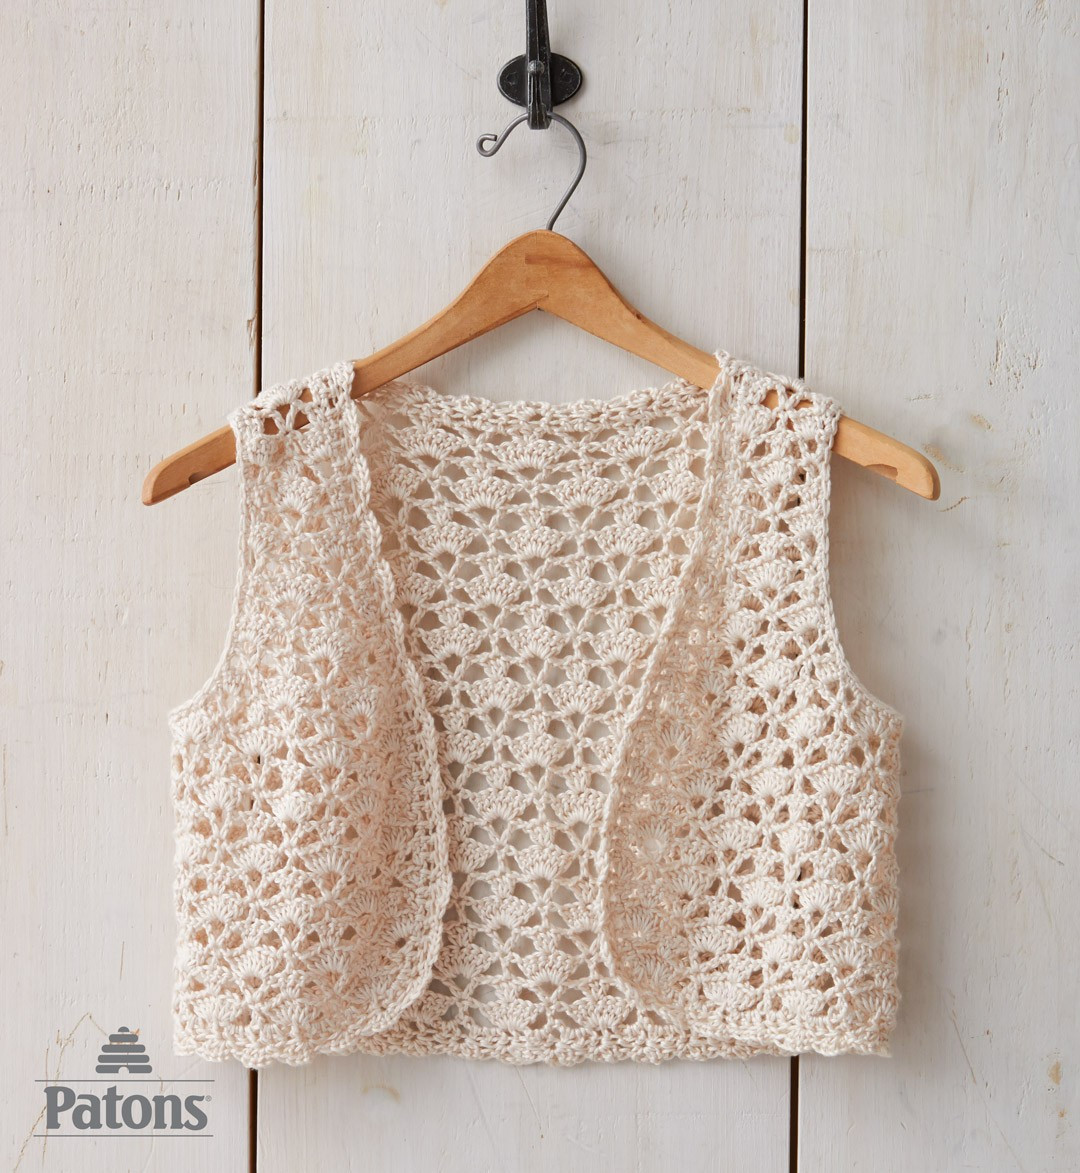 Crochet Vest Pattern New Patons Seashell Crochet Vest Crochet Pattern Of Lovely 47 Models Crochet Vest Pattern